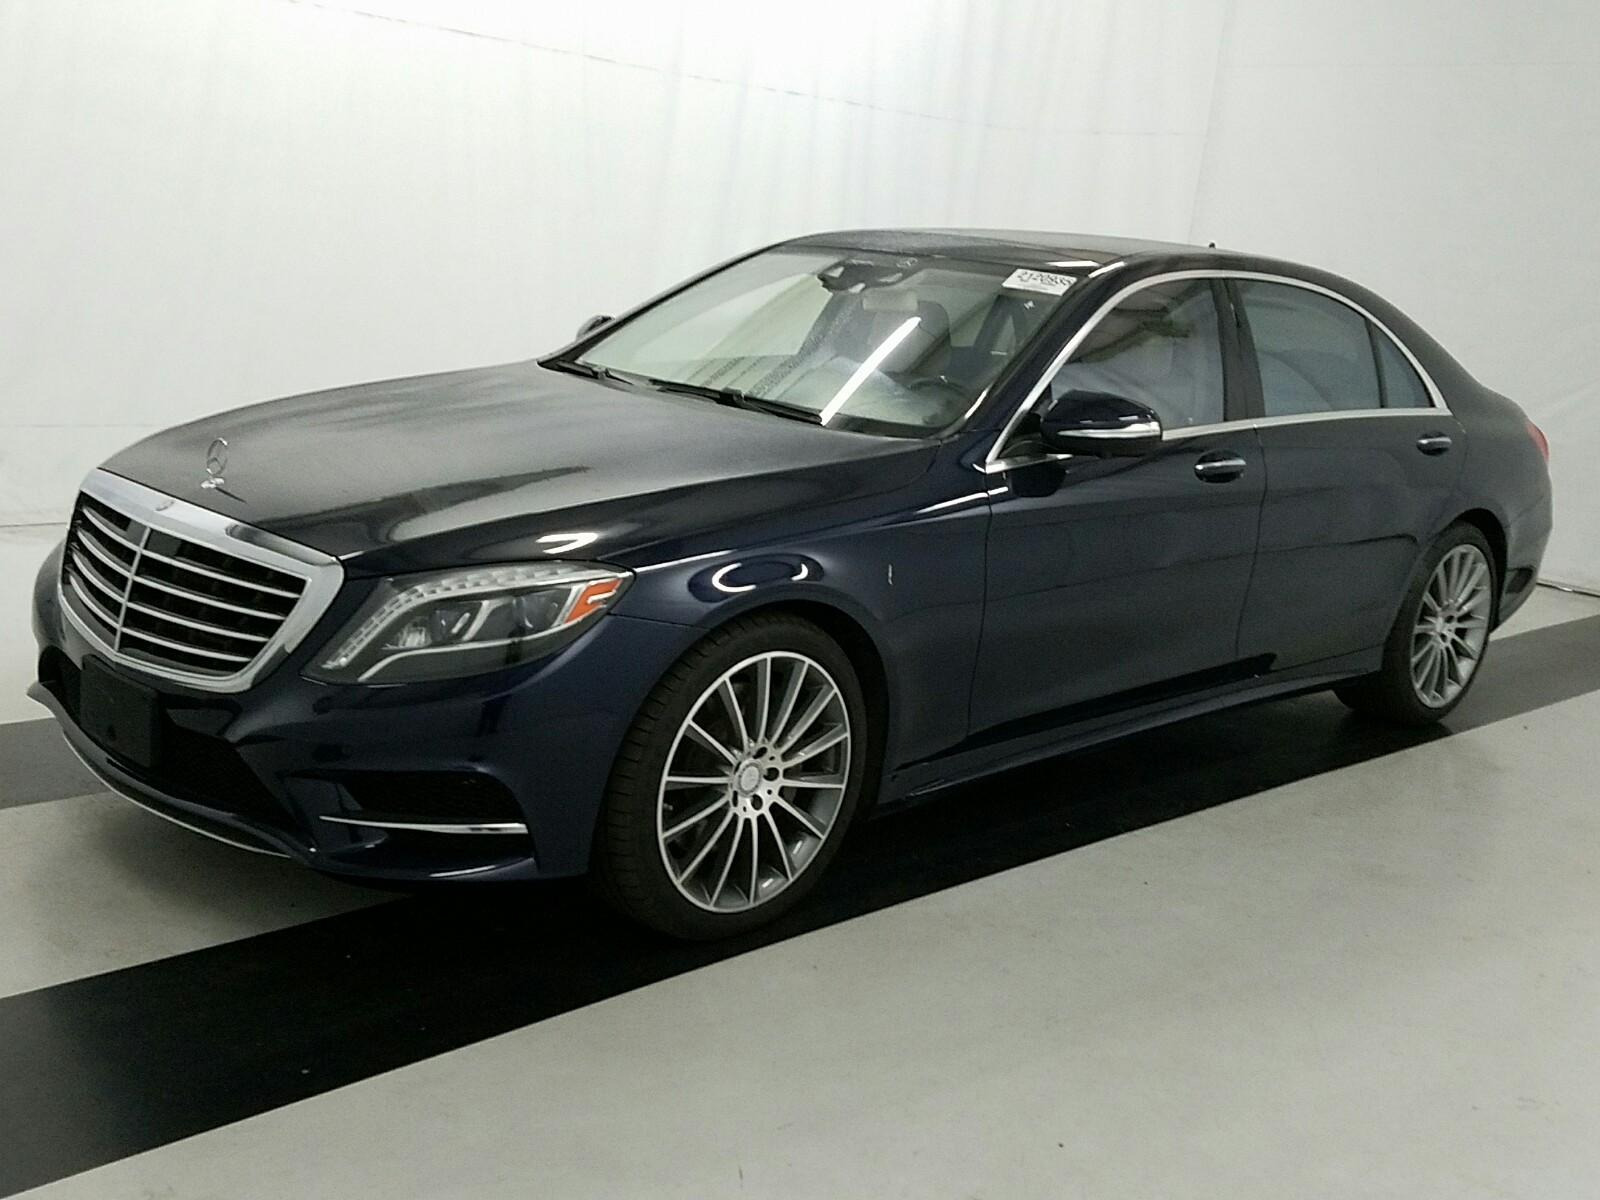 used 2014 mercedes benz s class s550 marietta ga. Black Bedroom Furniture Sets. Home Design Ideas